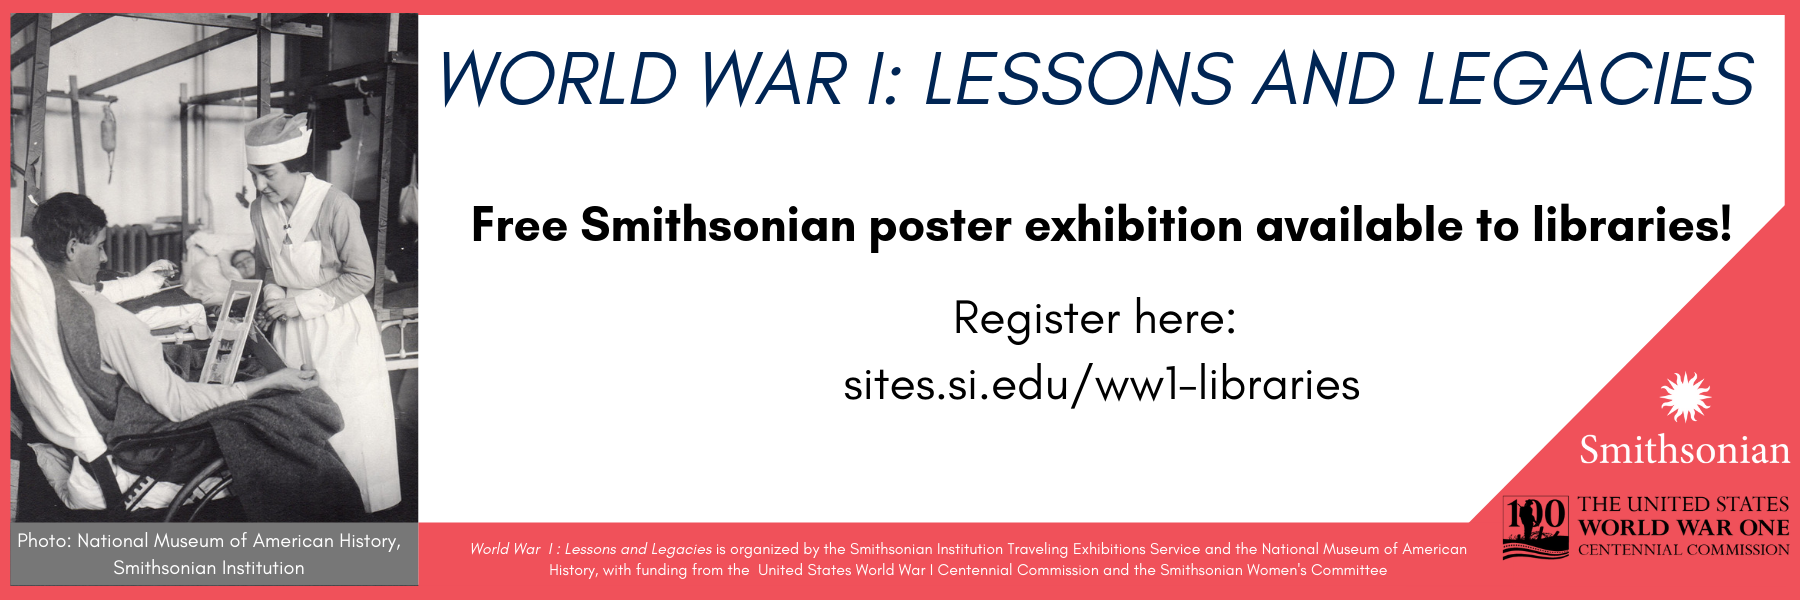 World War I: Lessons  and Legacies. Free Smithsonian poster exhibition available to libraries! Register  here: sites.si.edu/ww1-libraries